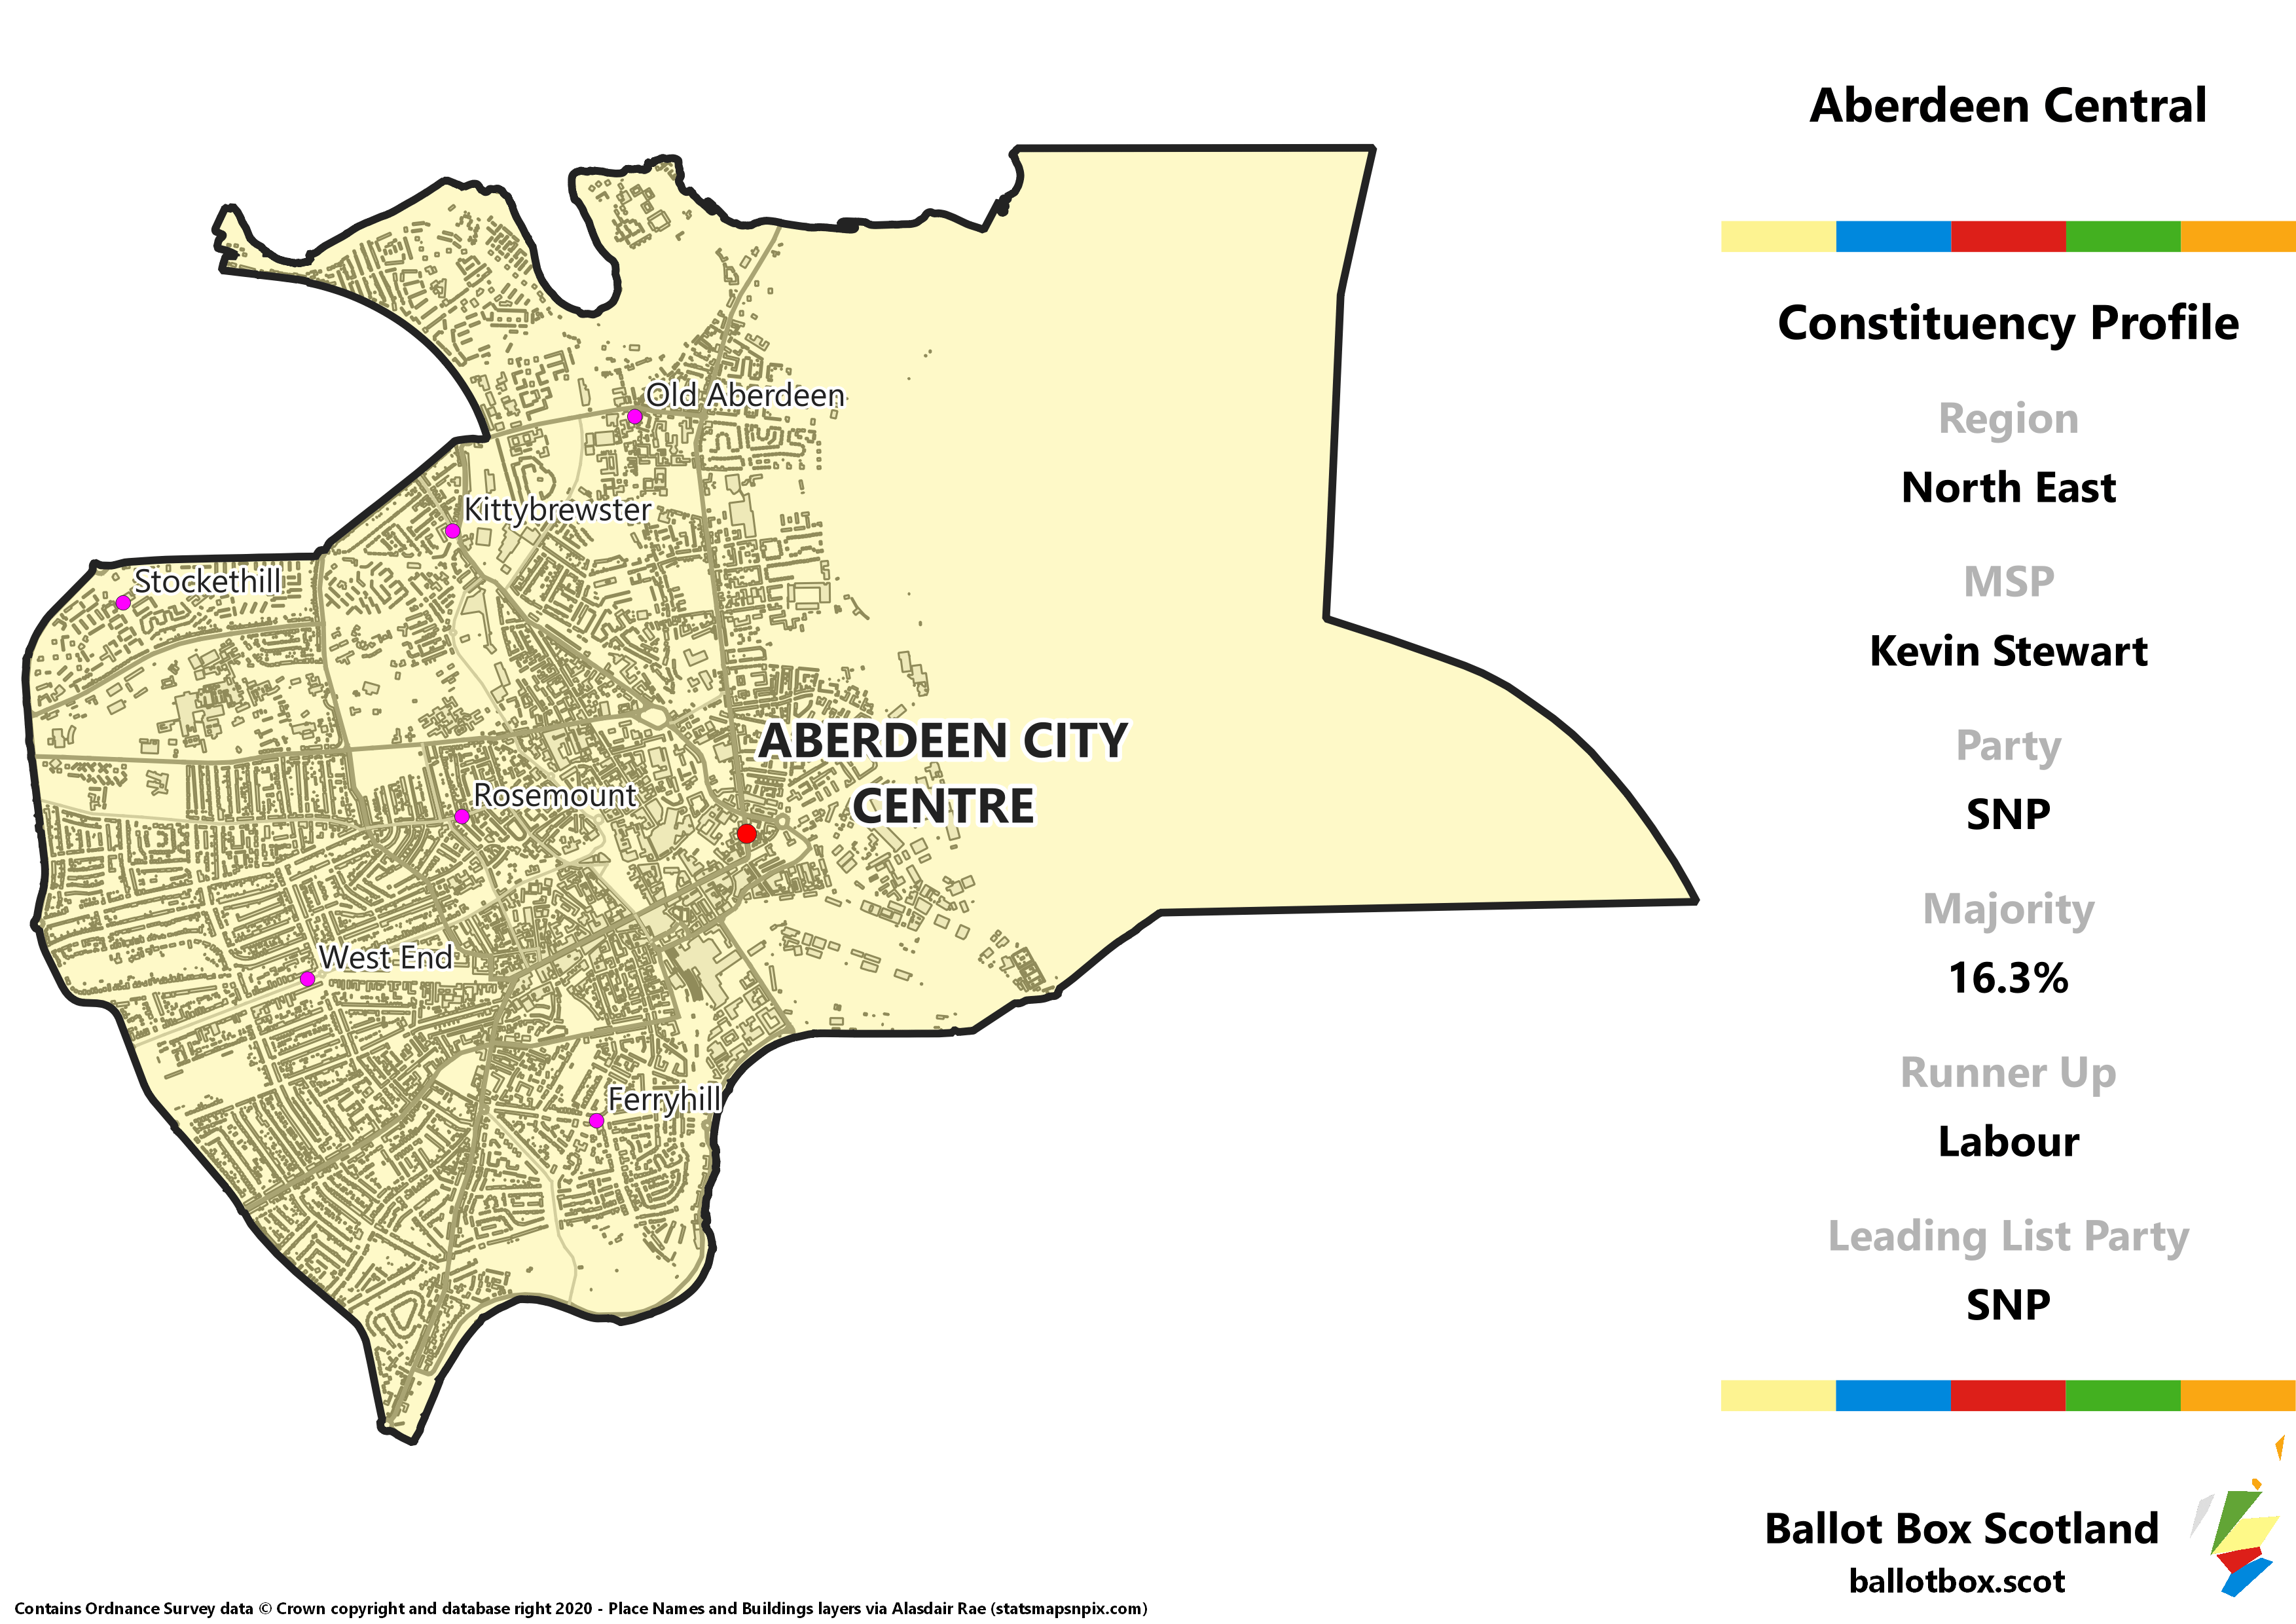 North East Region – Aberdeen Central Constituency Map